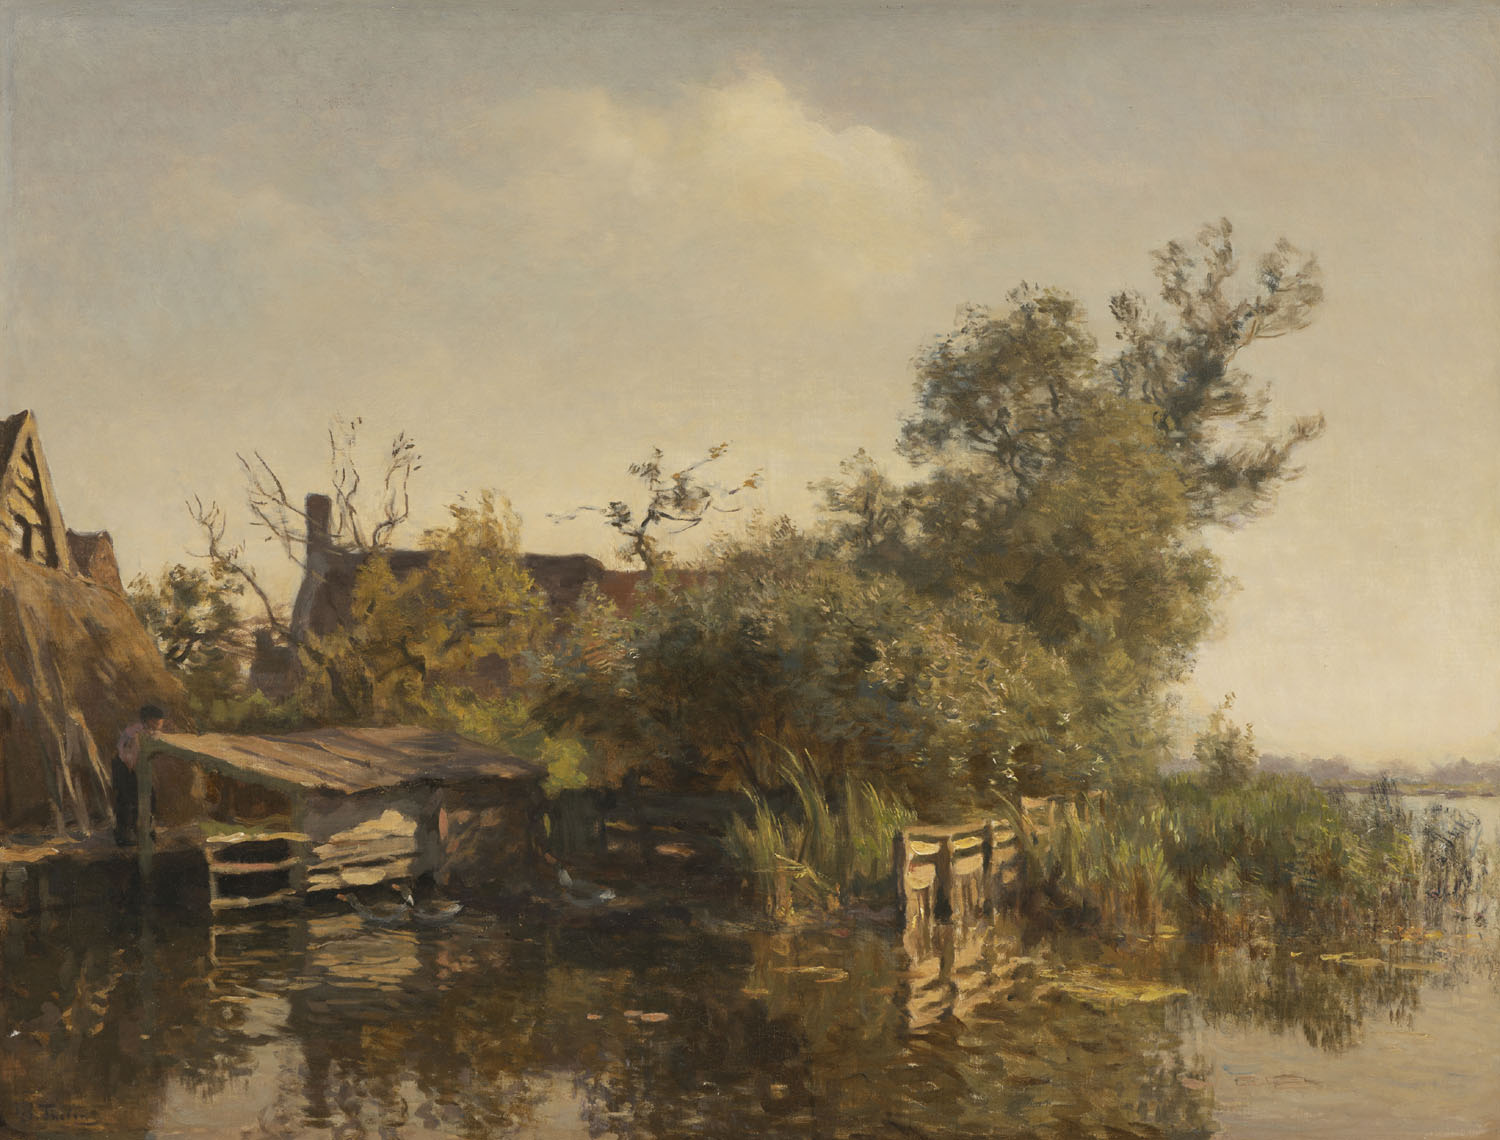 Willem Bastiaan Tholen | View of a farm near a river | Kunsthandel Bies | Bies Gallery